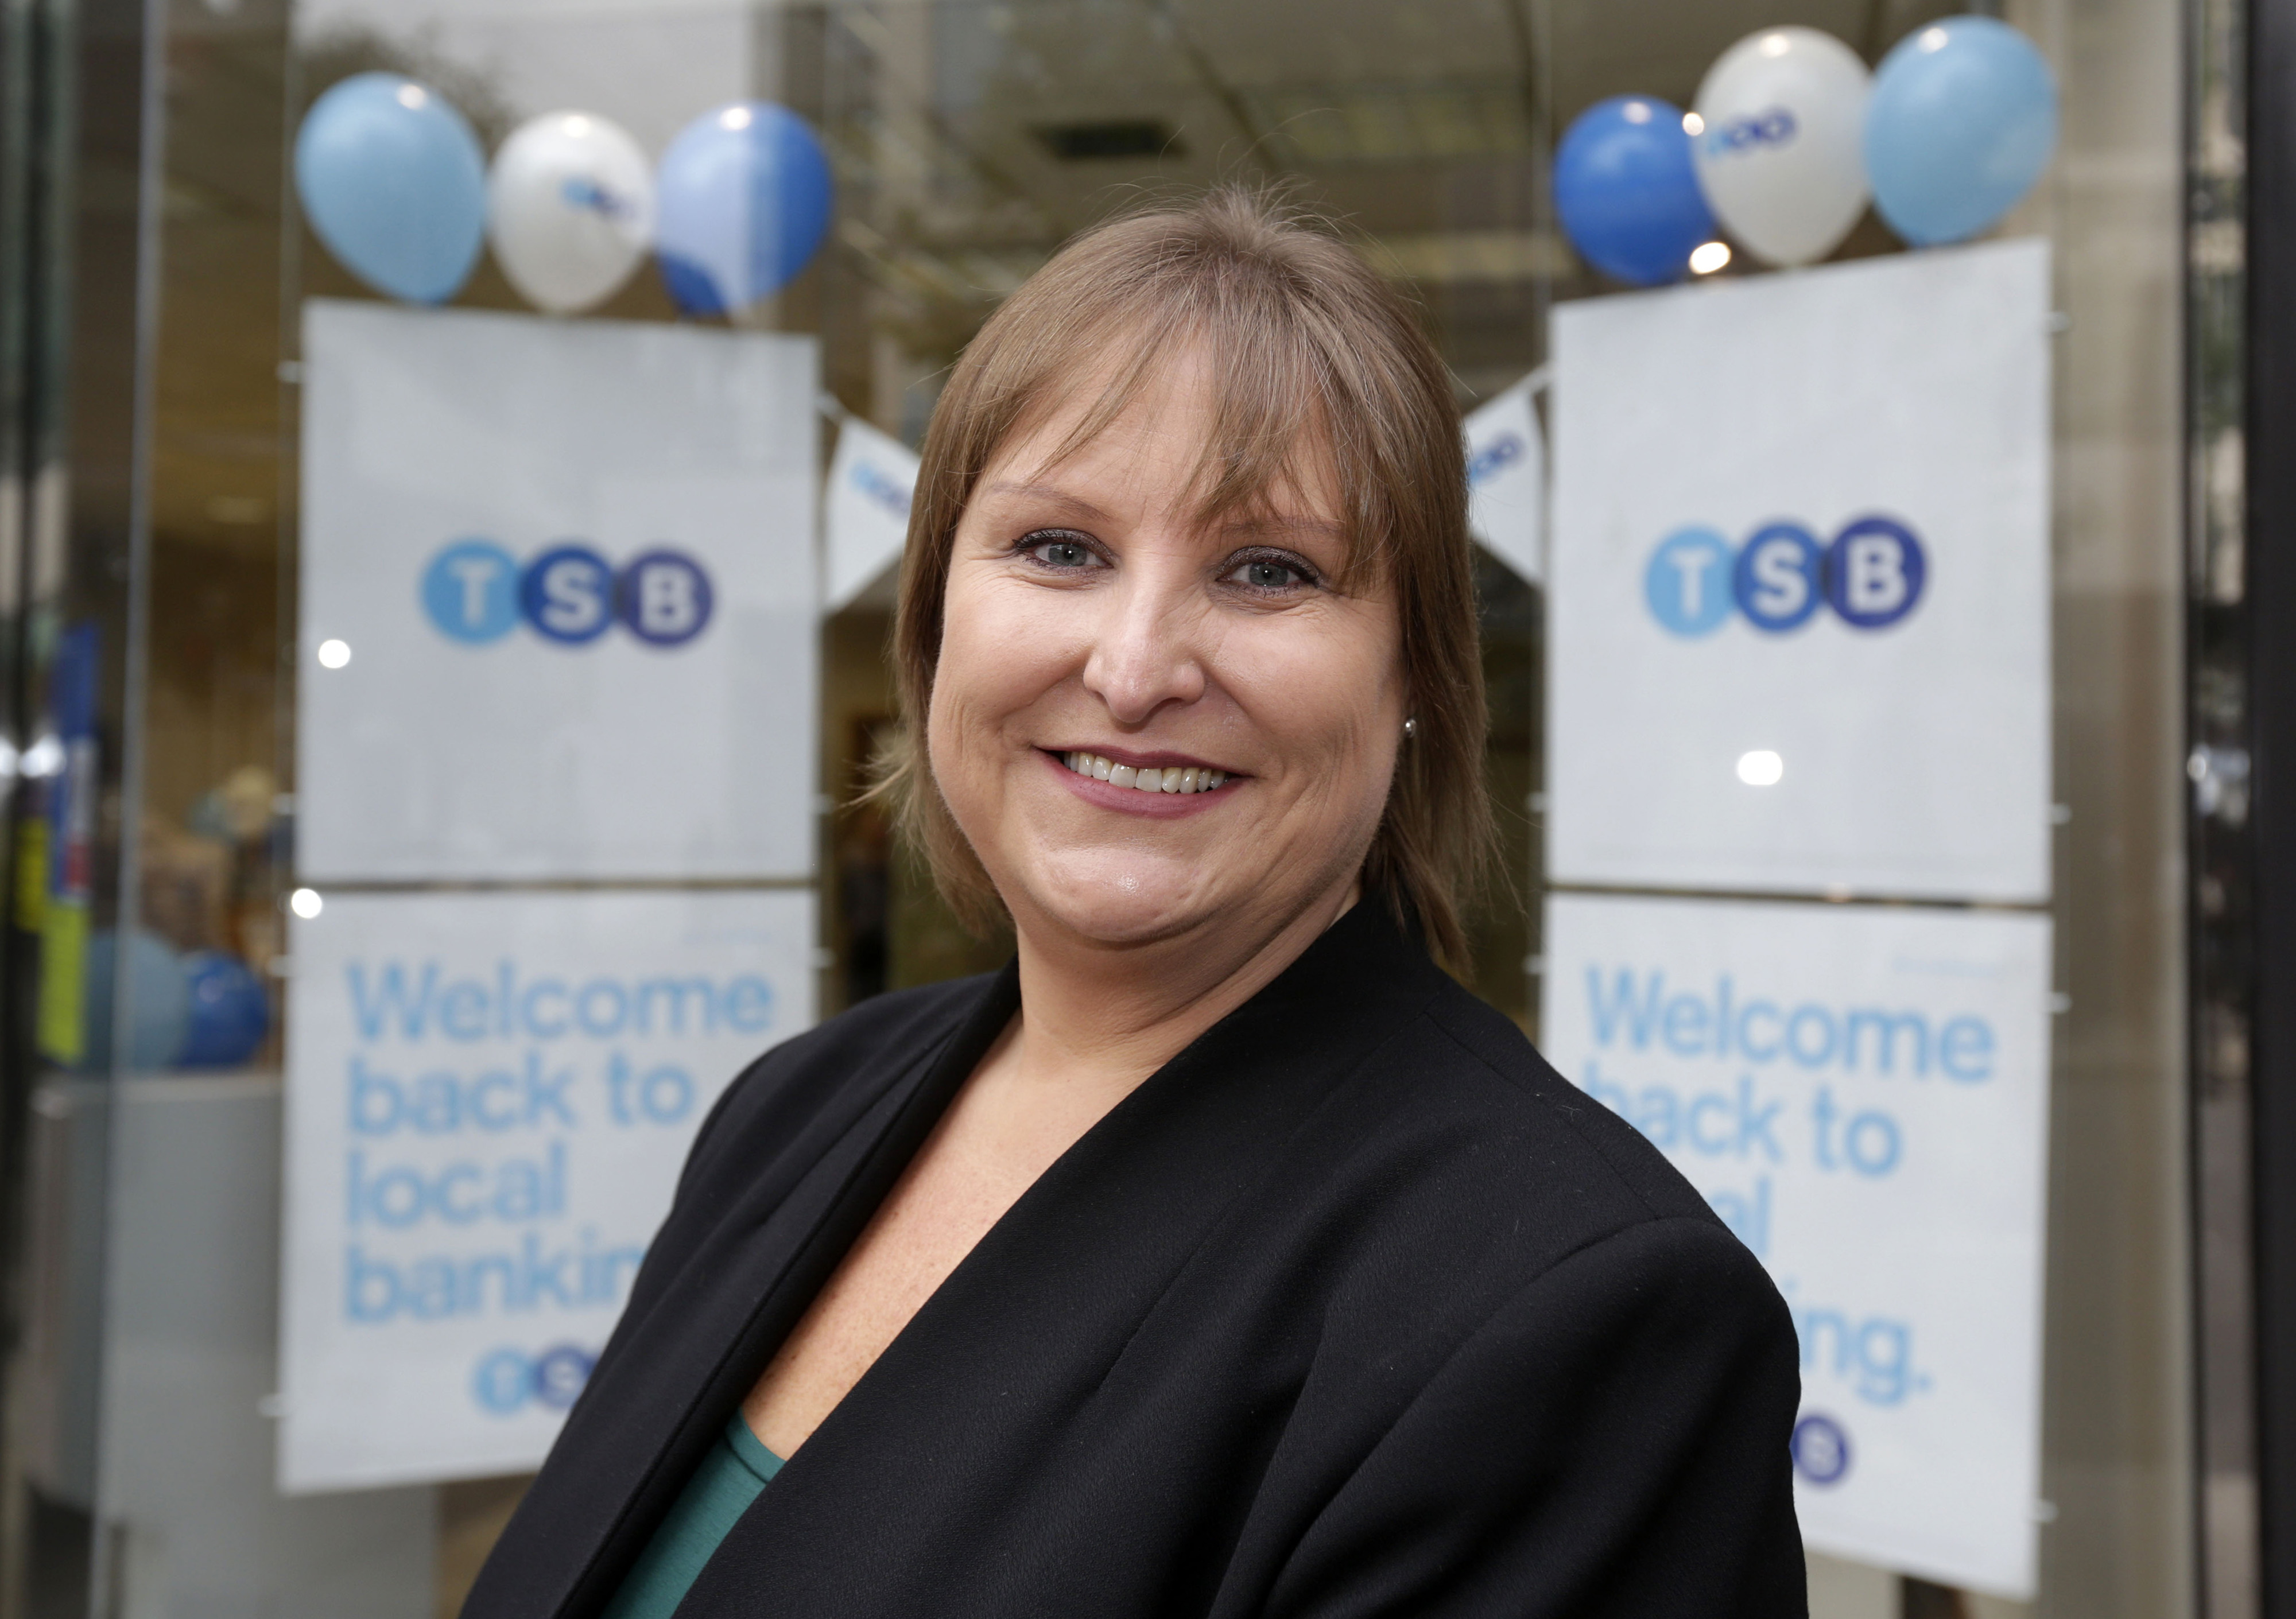 Lloyd's Banking Group Plc Launch The Newly Branded TSB Bank Branches